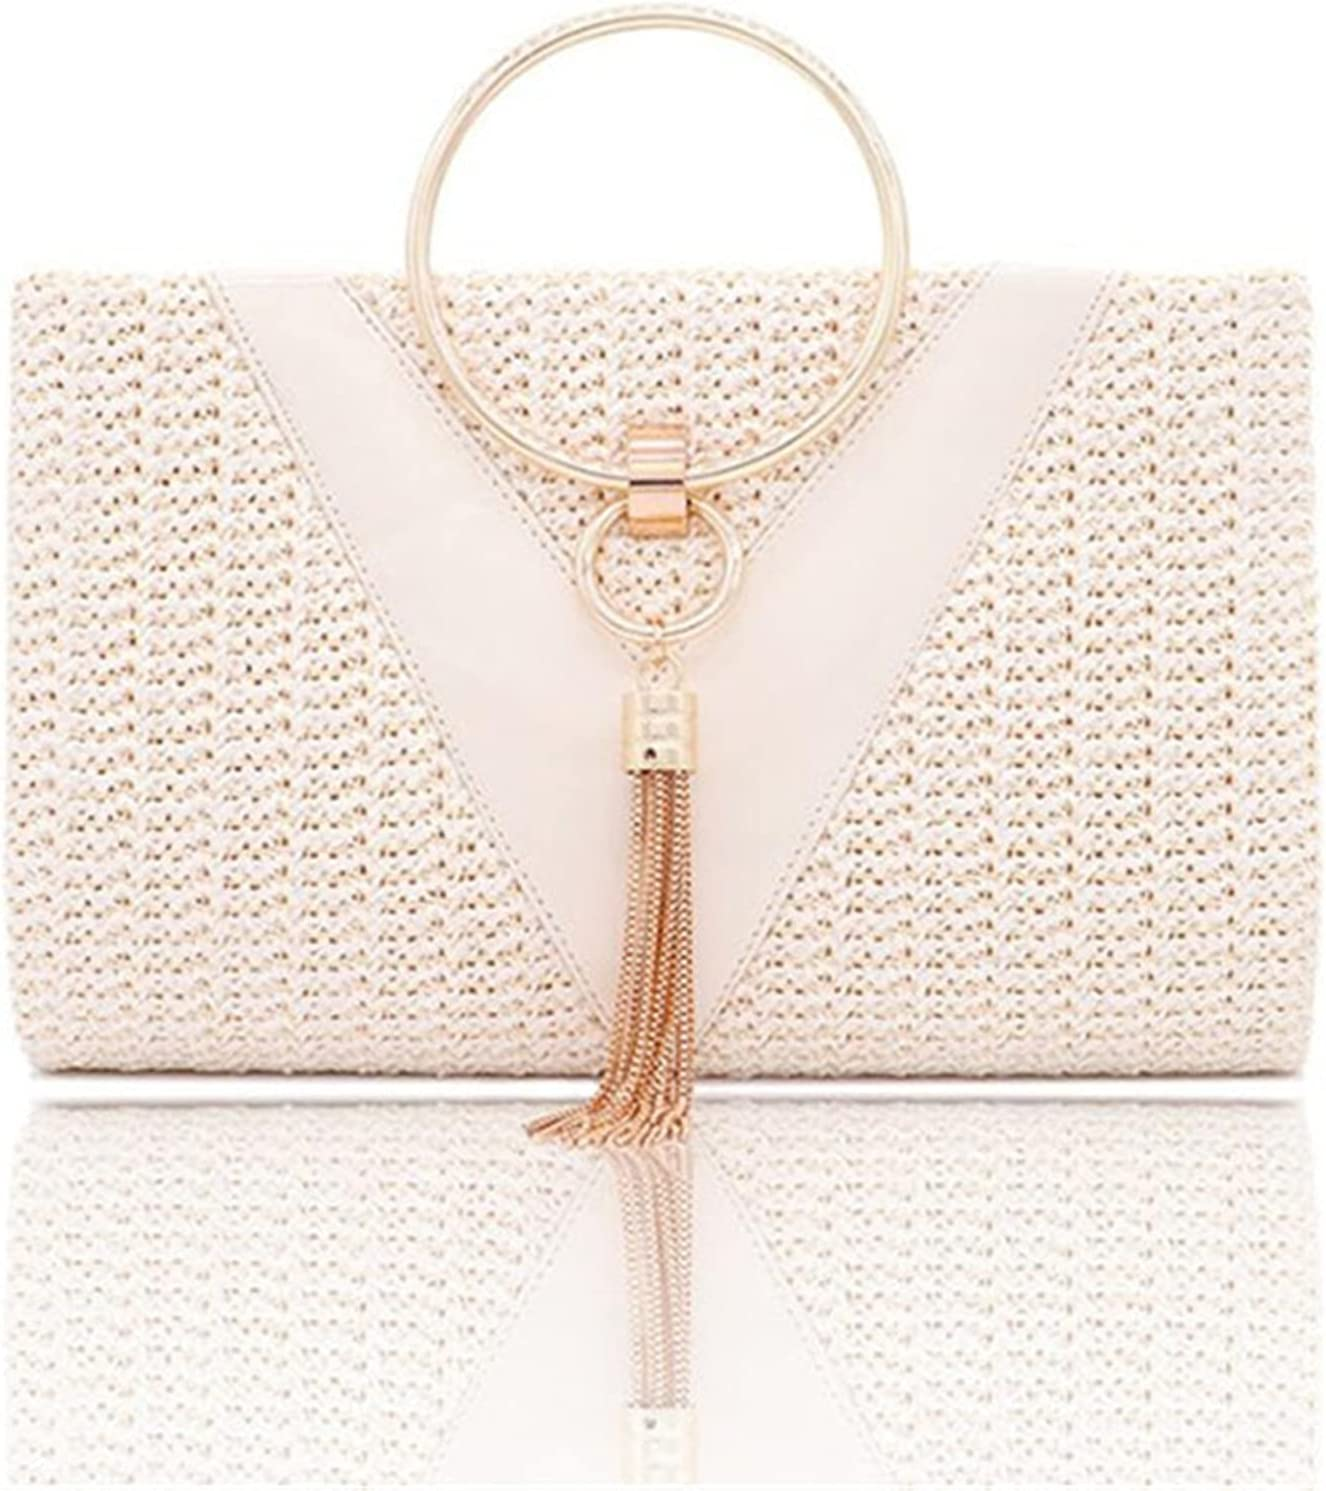 NC Womens Evening Bags Handbags with Metal Handle Tassel Clutch Chain Shoulder Purses Design for Lady Wedding Party (Color : A-Beige)